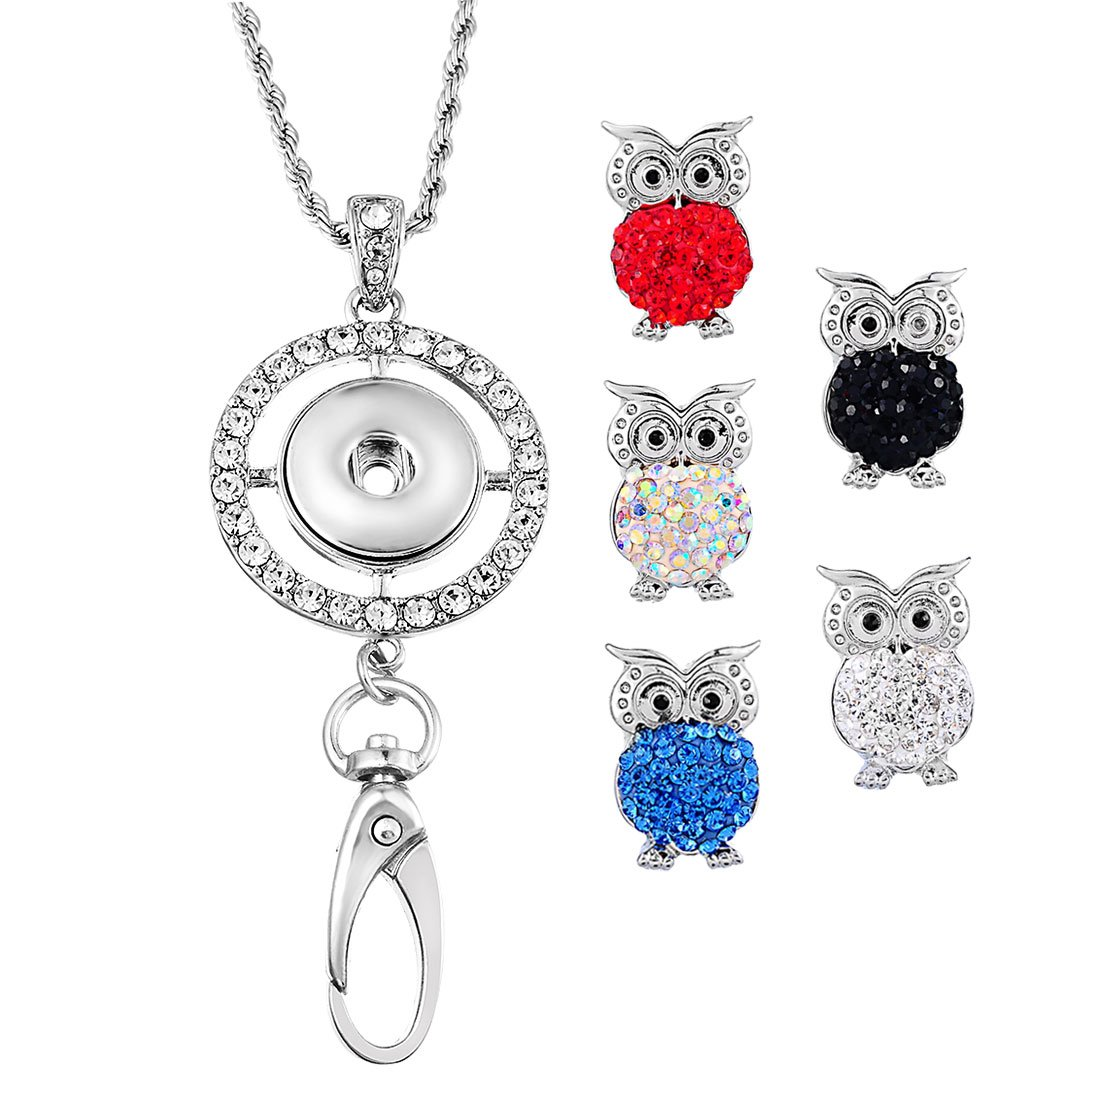 Souarts Womens Office Lanyard ID Badges Holder Necklace with 5pcs Owl Snap Charms Jewelry Pendant Clip